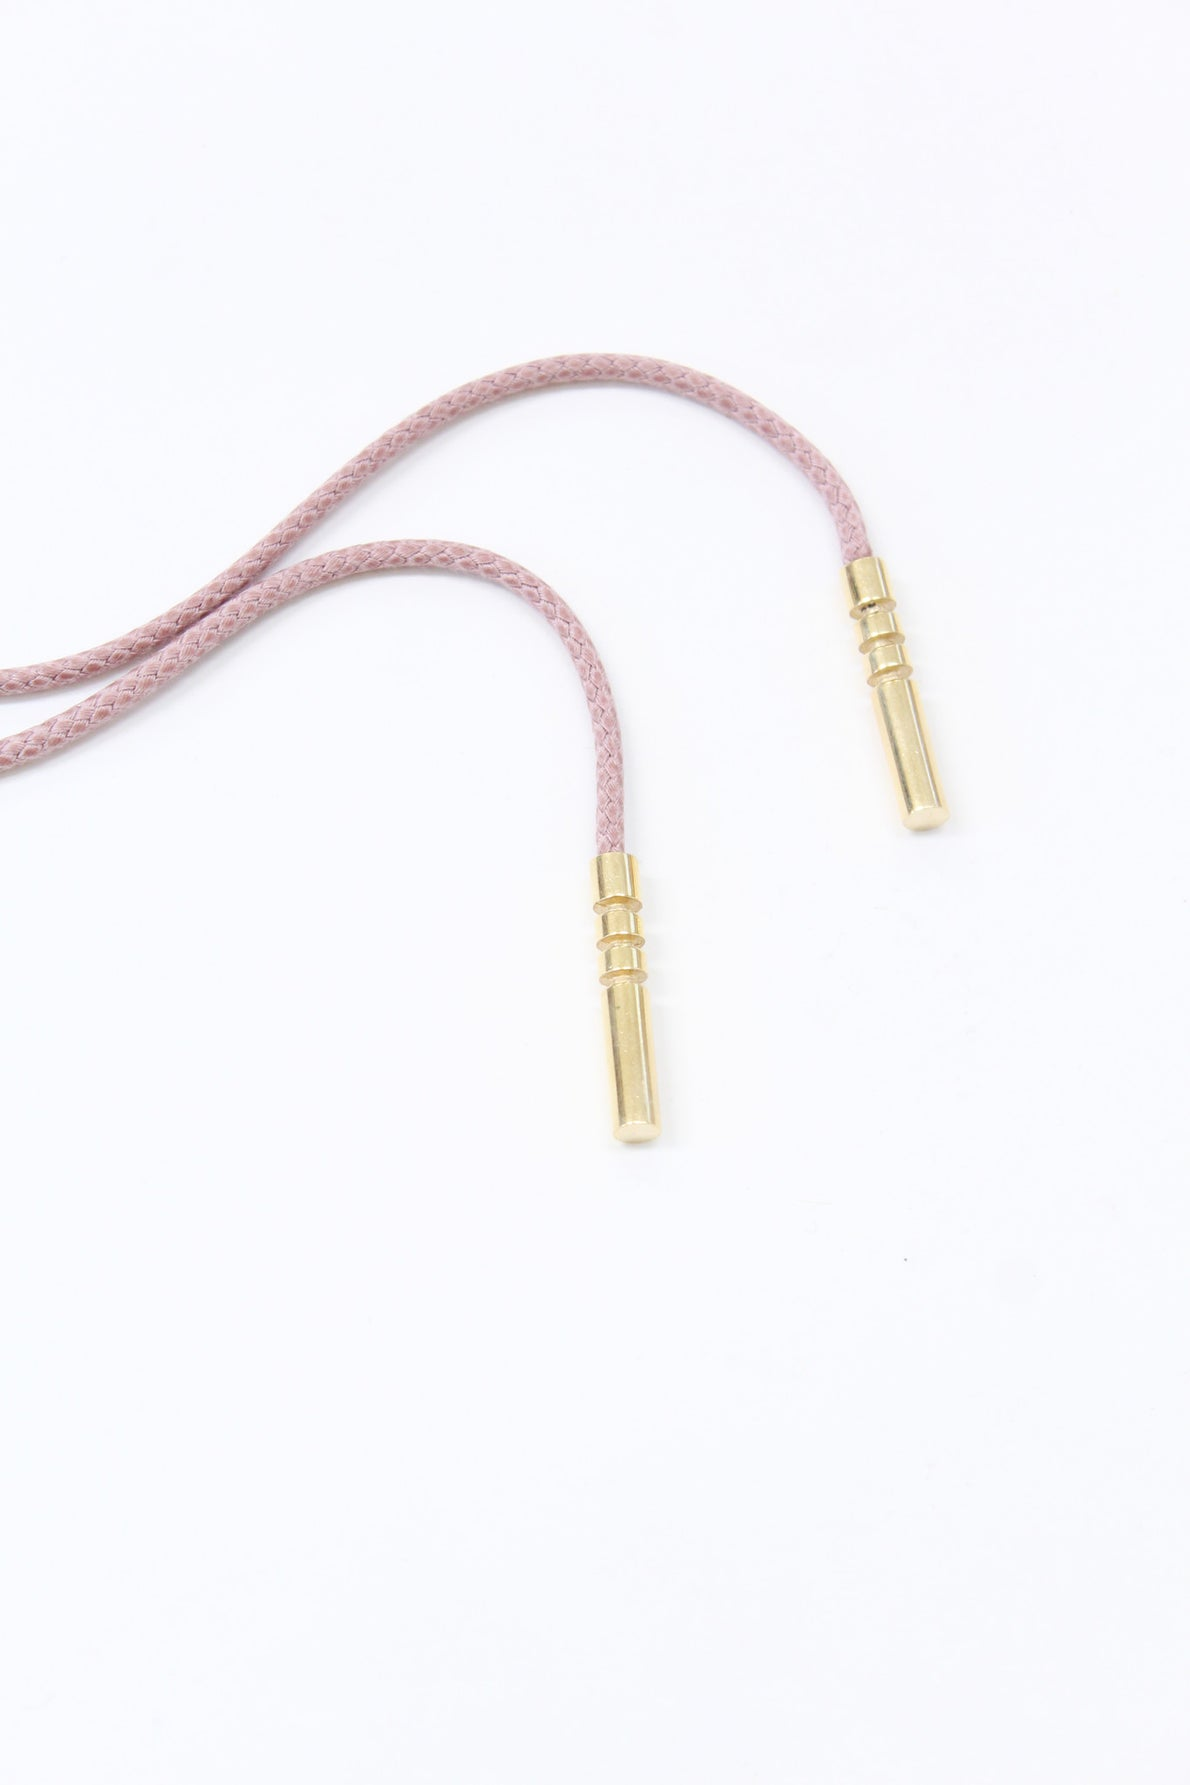 Rachel Comey x Quarry Bard Bolo Necklace